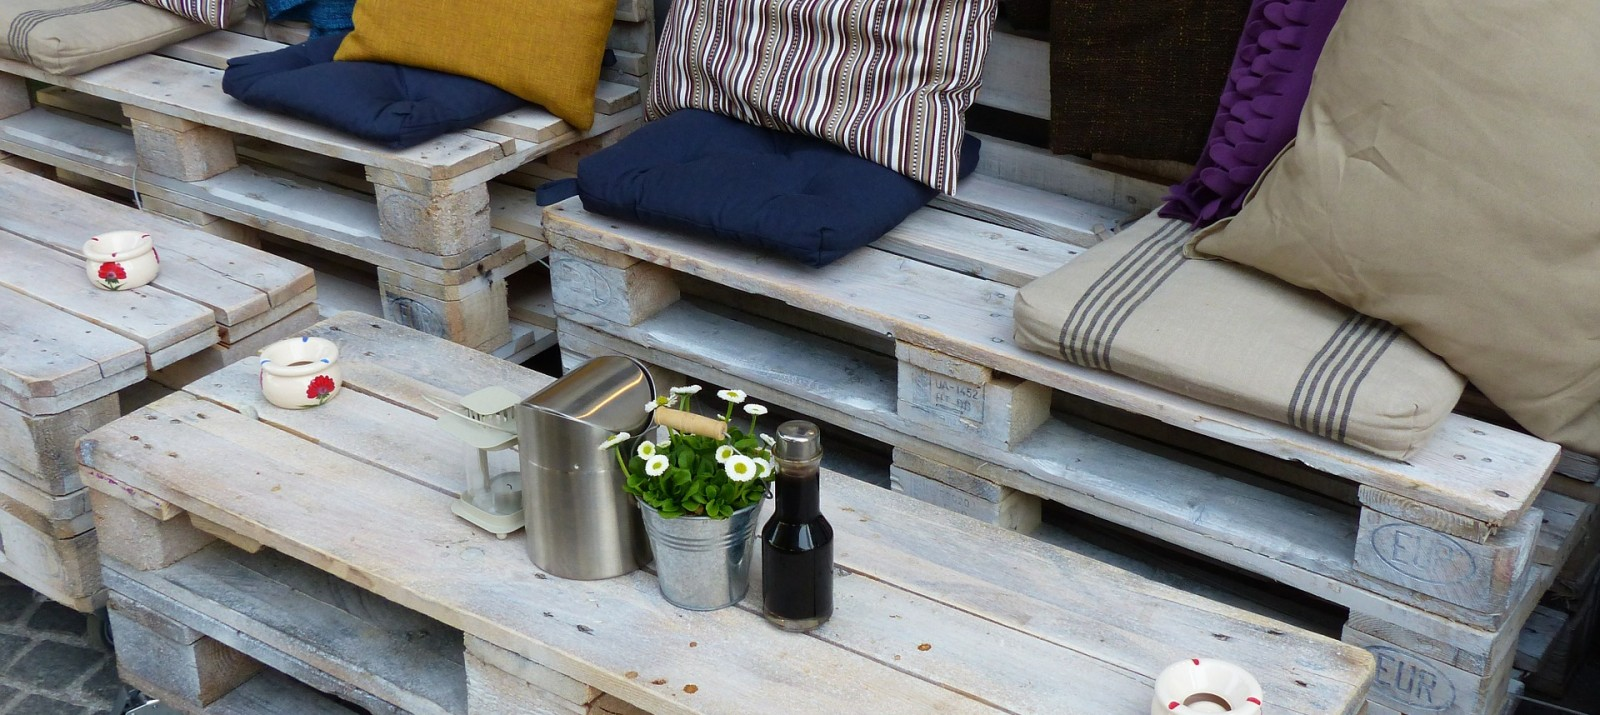 Diy Wood Pallet Patio Furniture With Colorful Cushions And Storage E